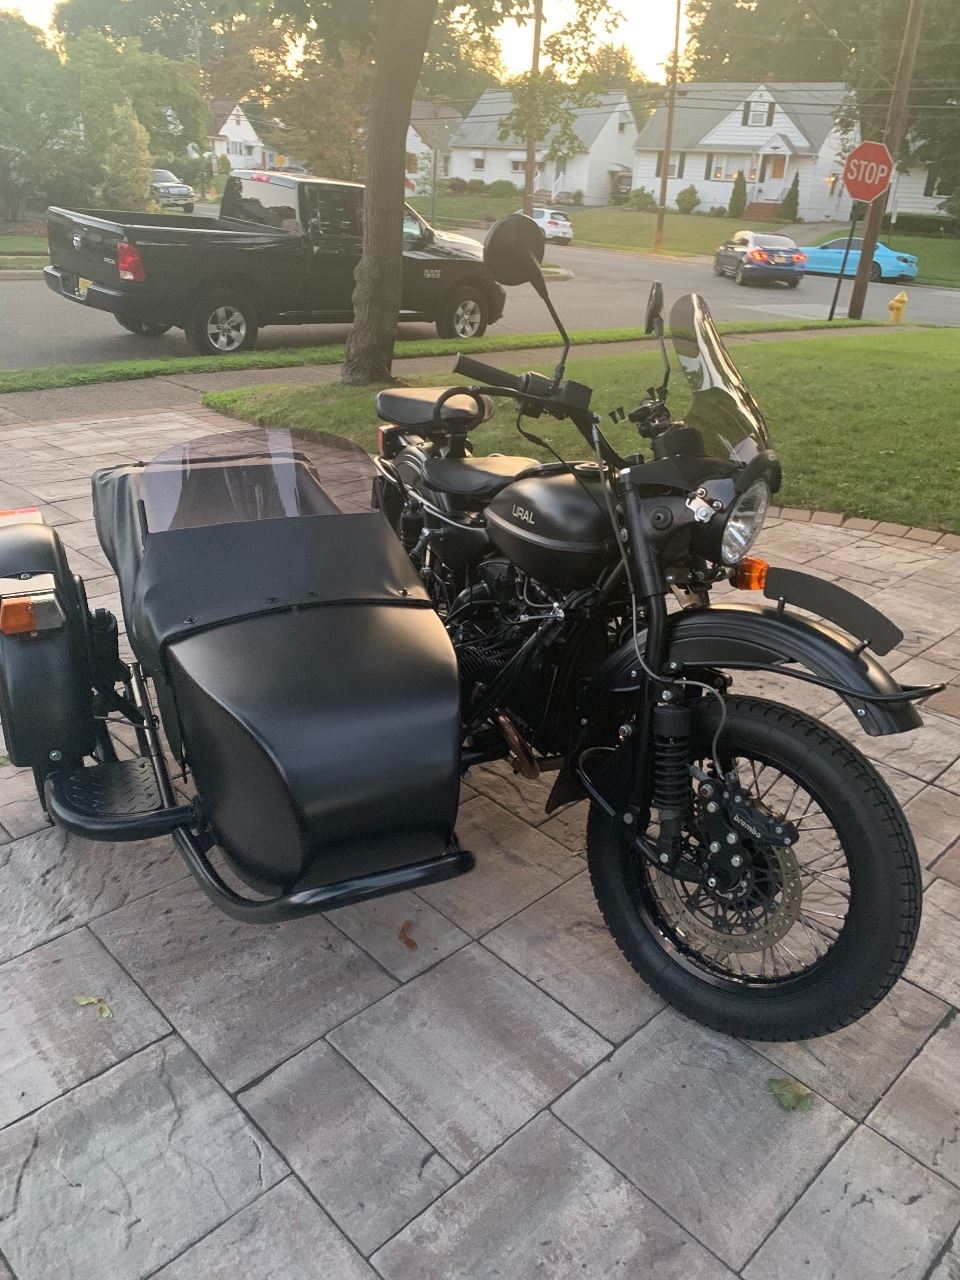 Ural For Sale - Ural Motorcycles - Cycle Trader